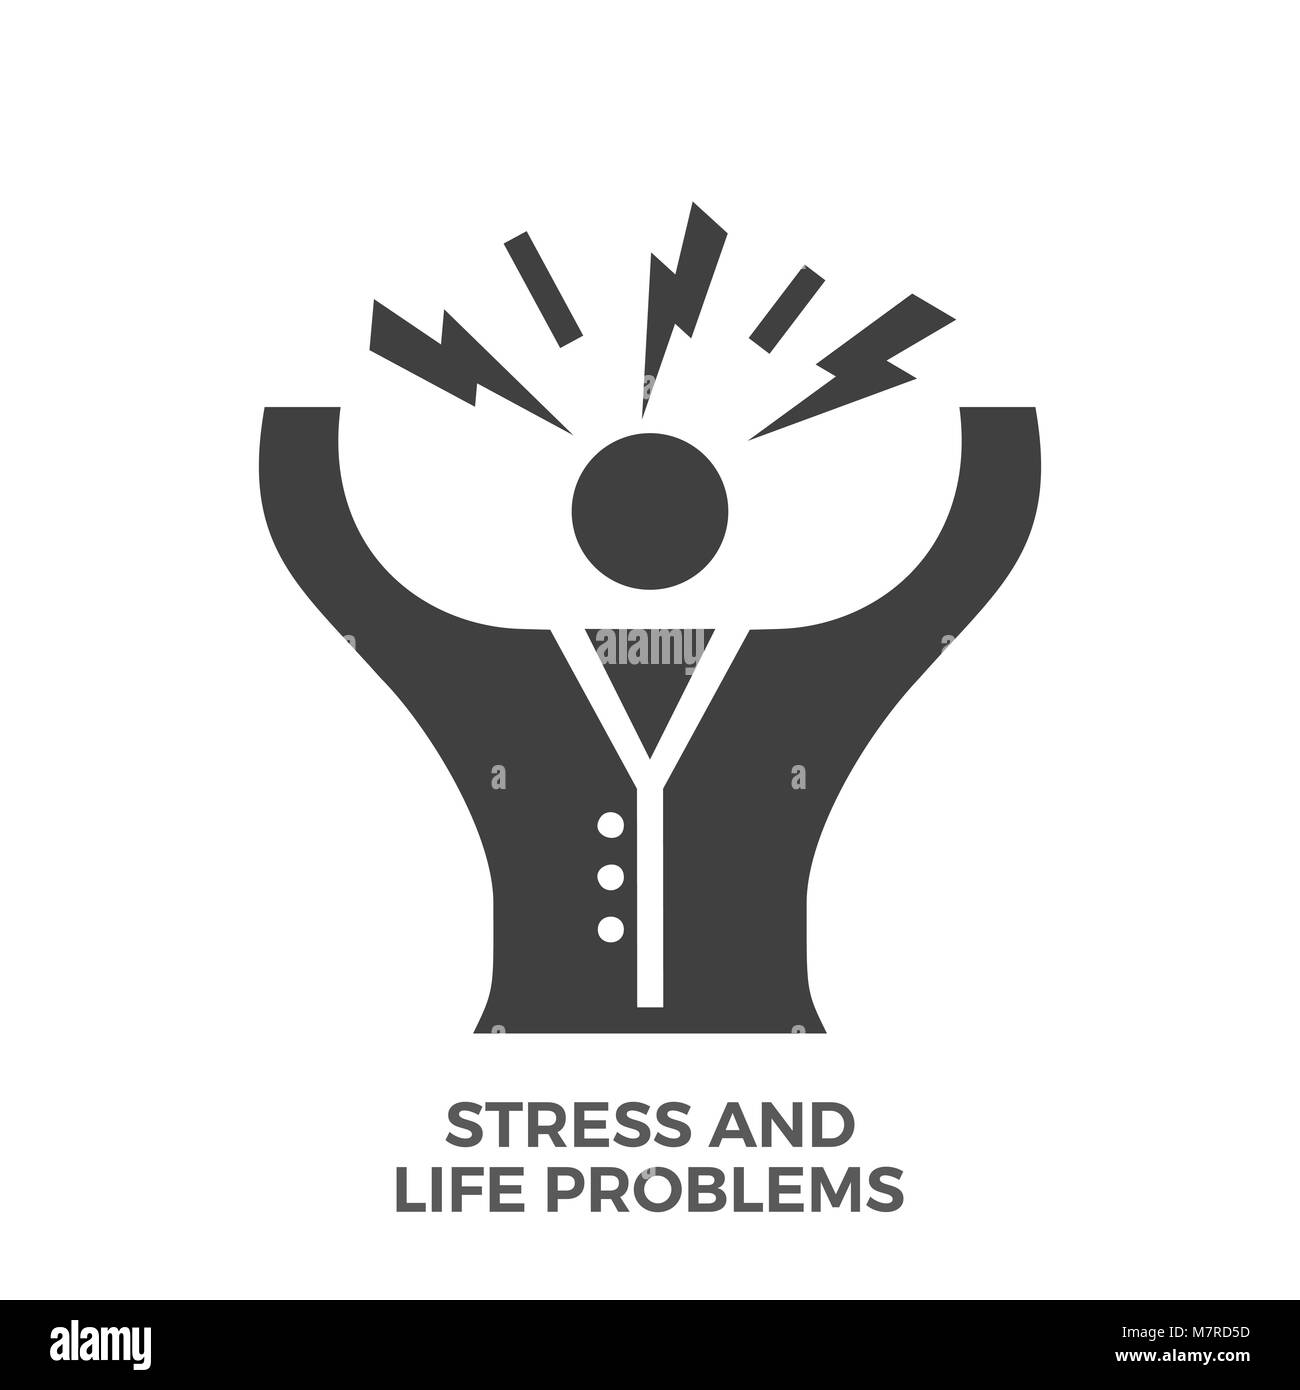 Stress and Life Problems Glyph Vector Icon. - Stock Vector